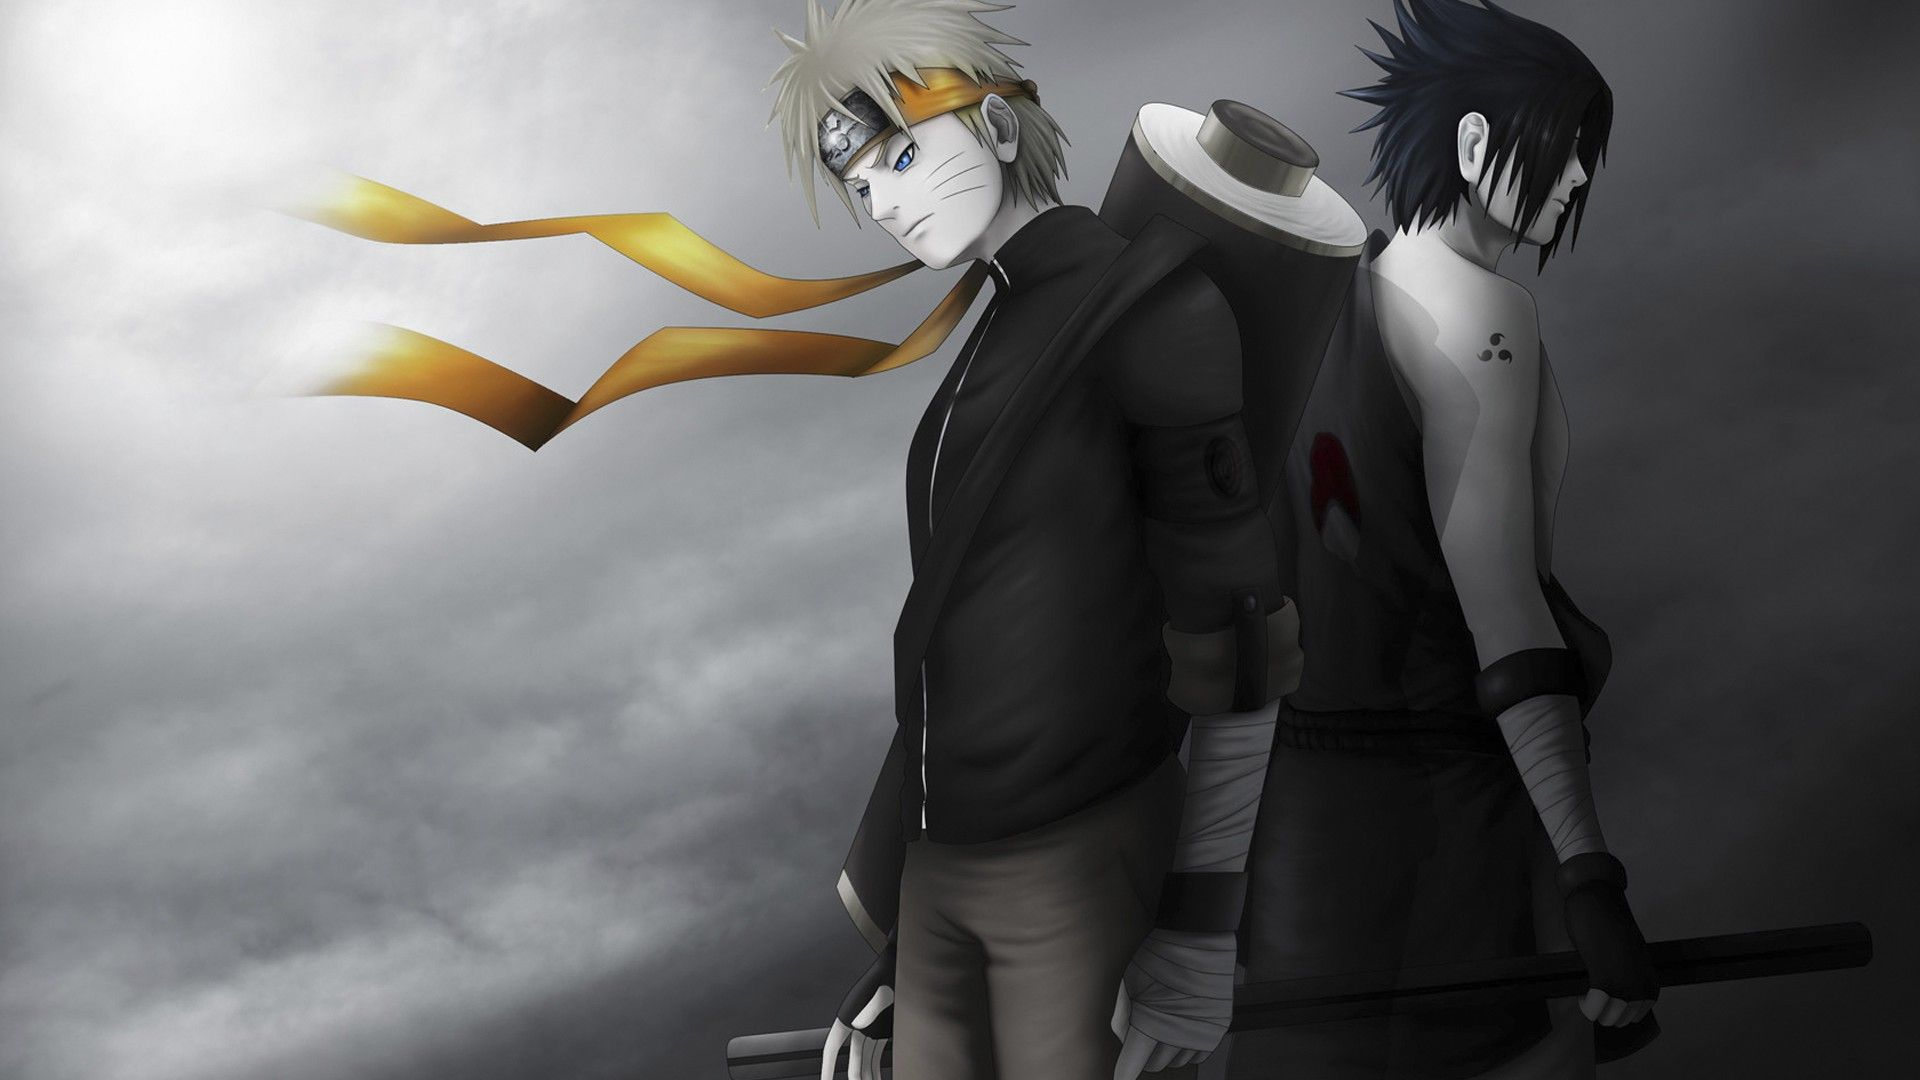 sasuke shippuden wallpaper #10